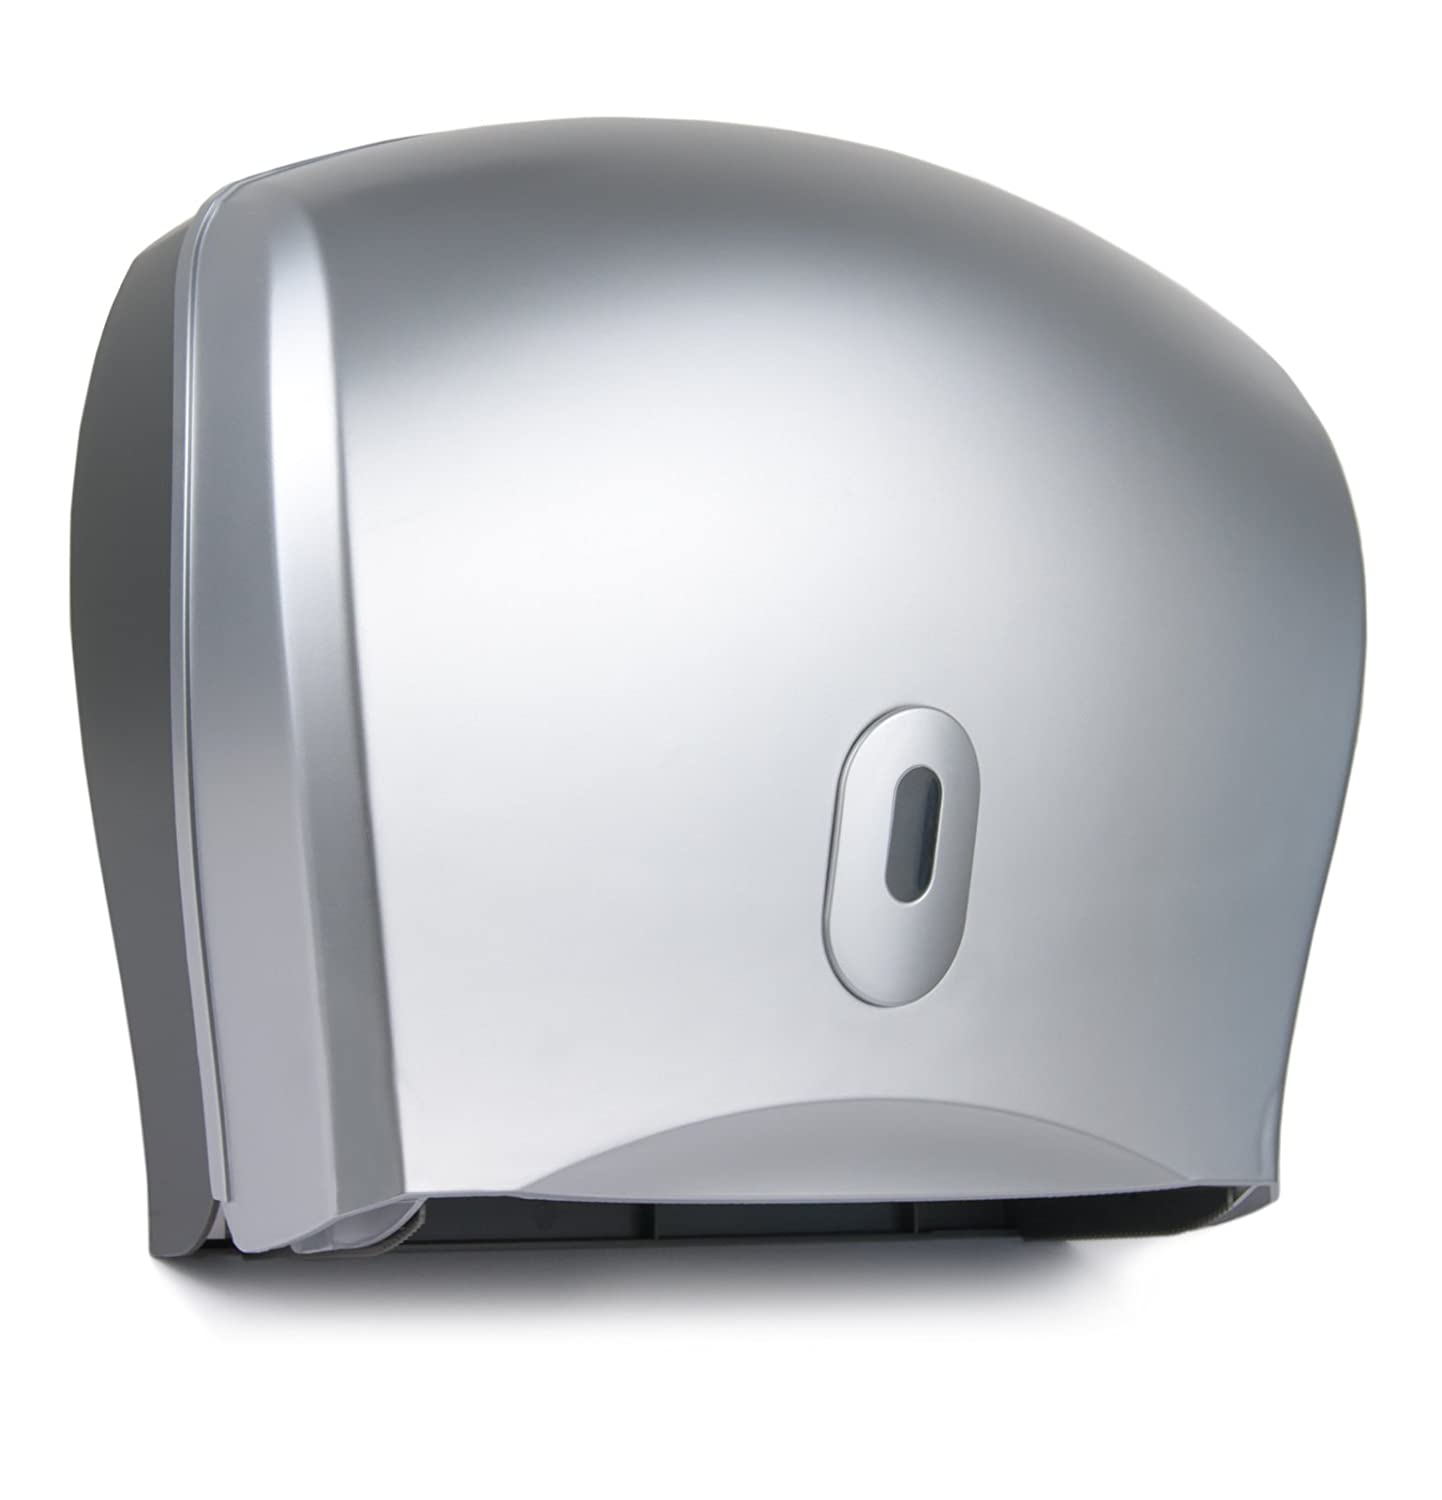 Washroom Hub Mini Jumbo Toilet Roll Dispenser - Duo Paper Holder - Commercial Bathroom